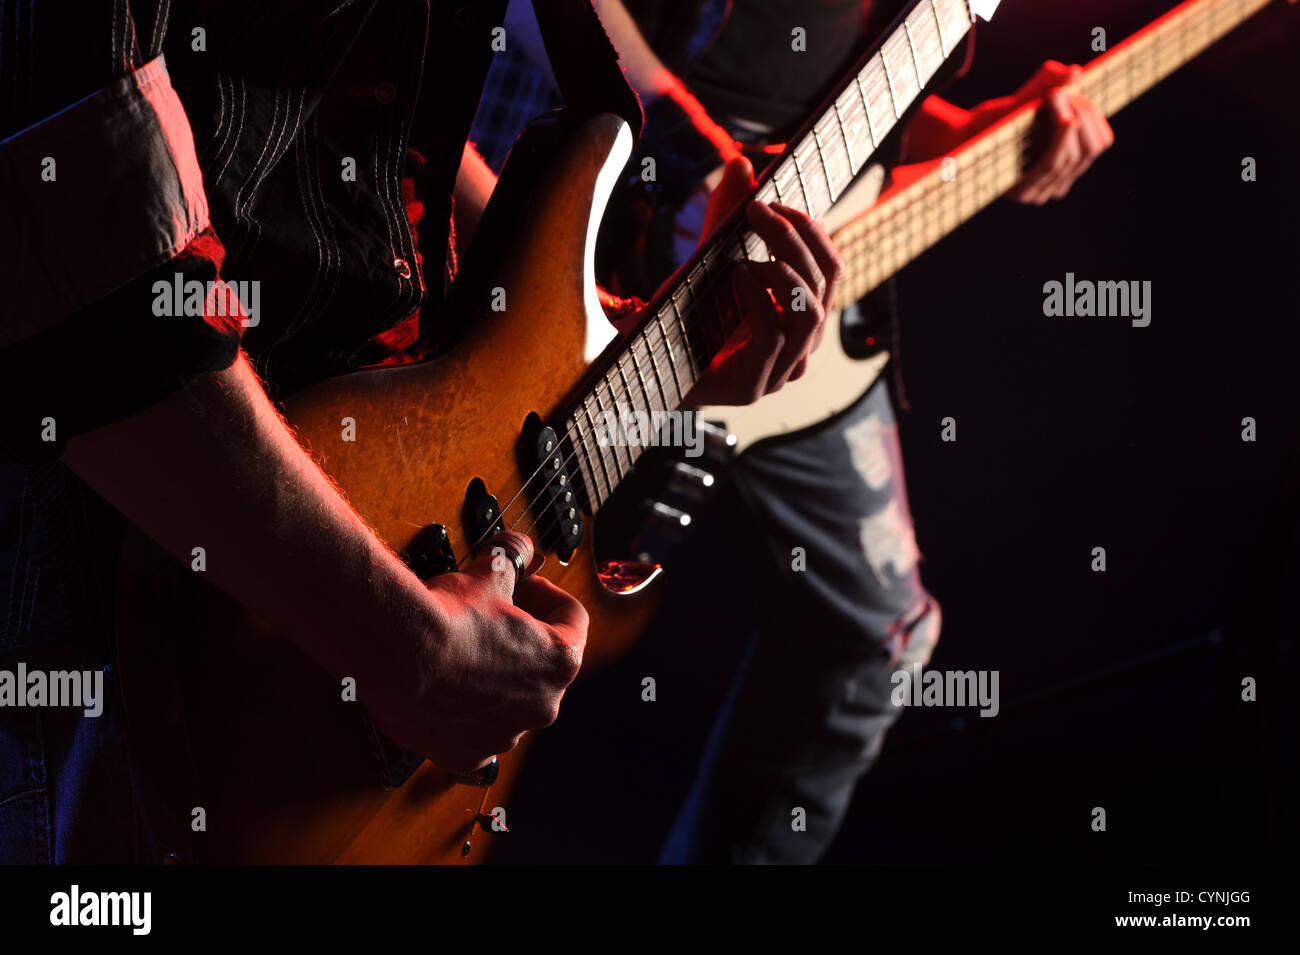 rock musicians playing at a live concert - Stock Image